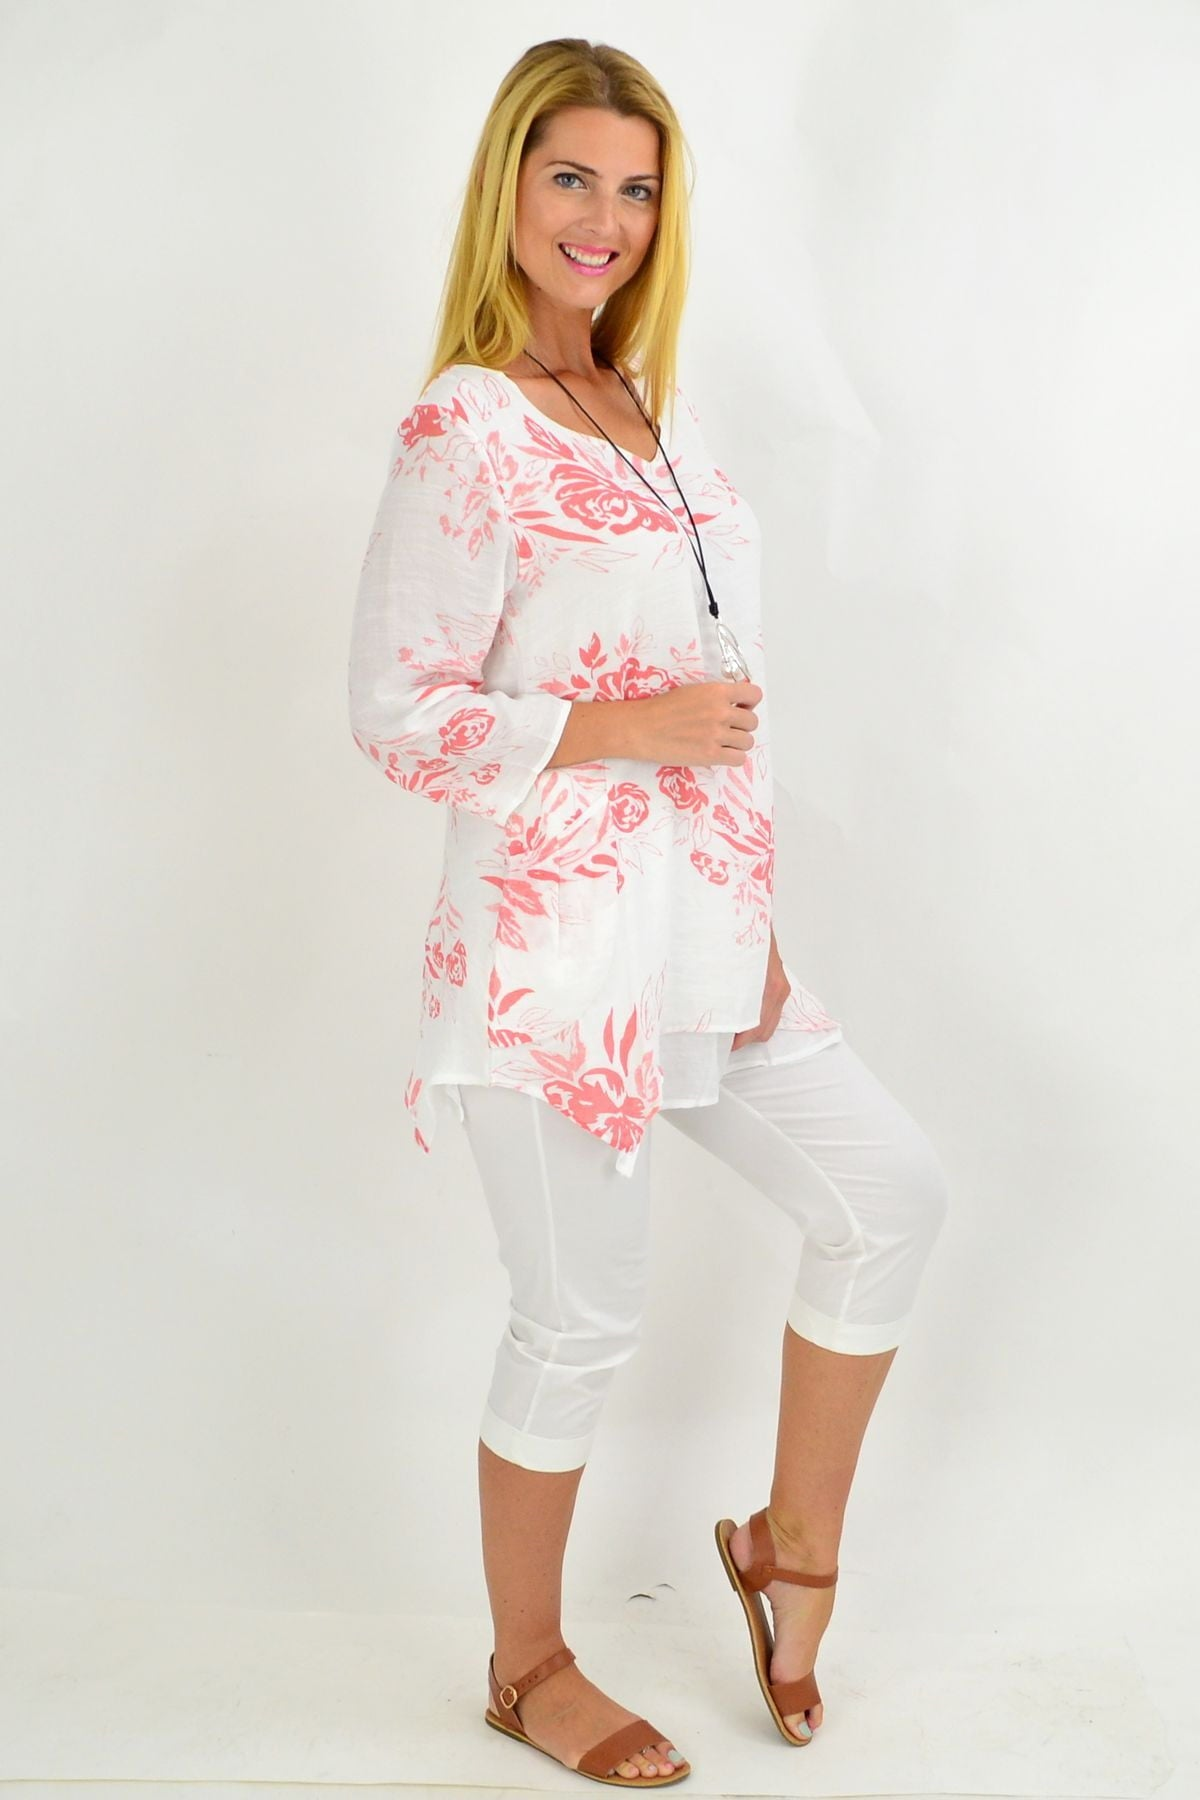 Salmon Pink Overlay Floral Tunic Blouse | I Love Tunics | Tunic Tops | Tunic | Tunic Dresses  | womens clothing online